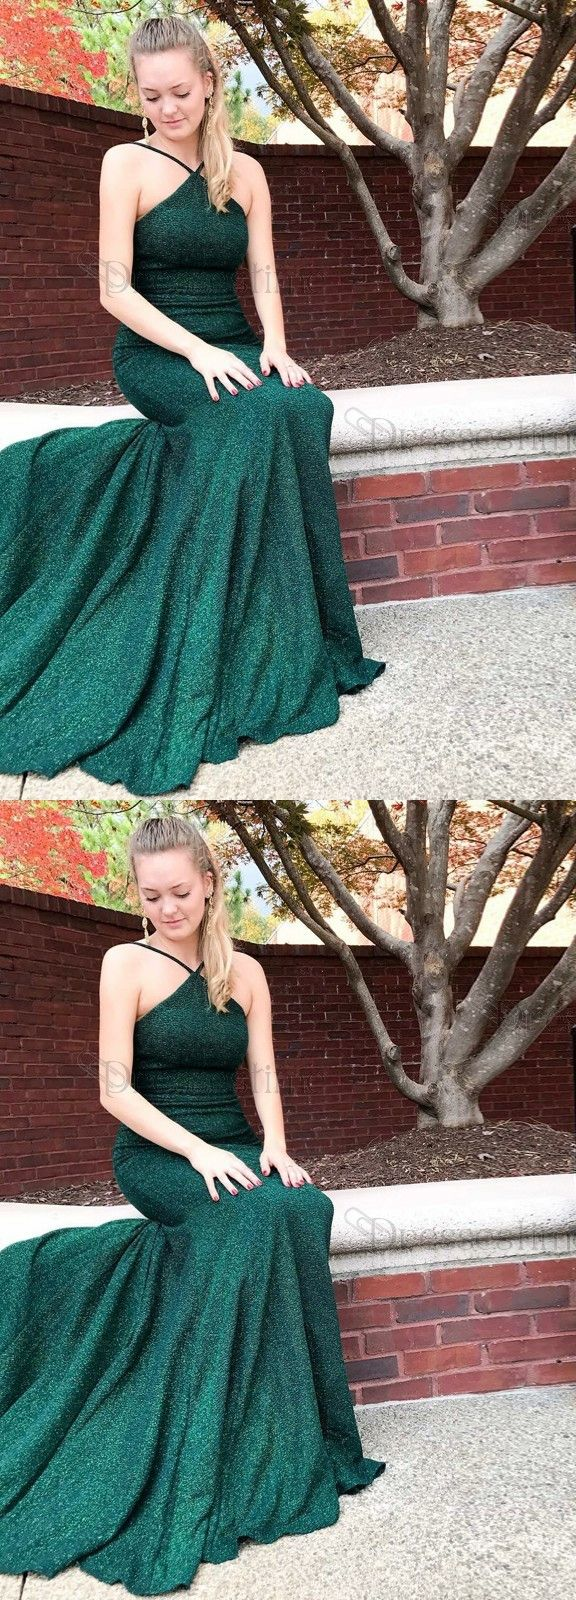 halter hunter prom evening gowns with beaded, fashion formal evening gowns, dreamy mermaid gowns.